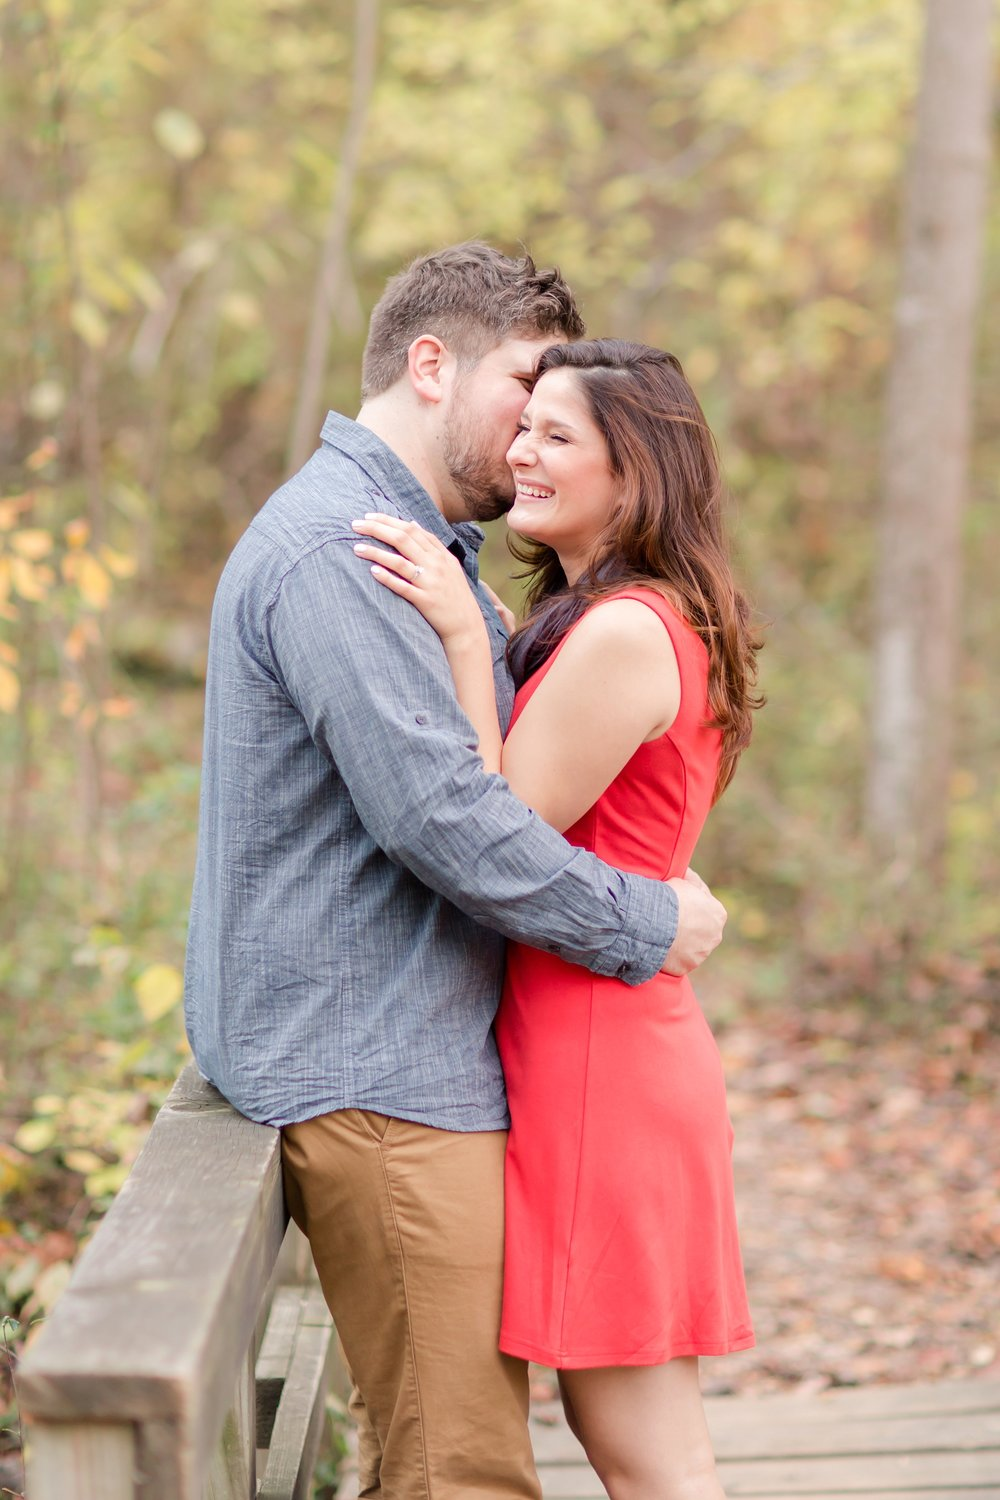 Rebecca & Greg Engagement-95_anna grace photography baltimore maryland engagement photographer jerusalem mill engagementphoto.jpg